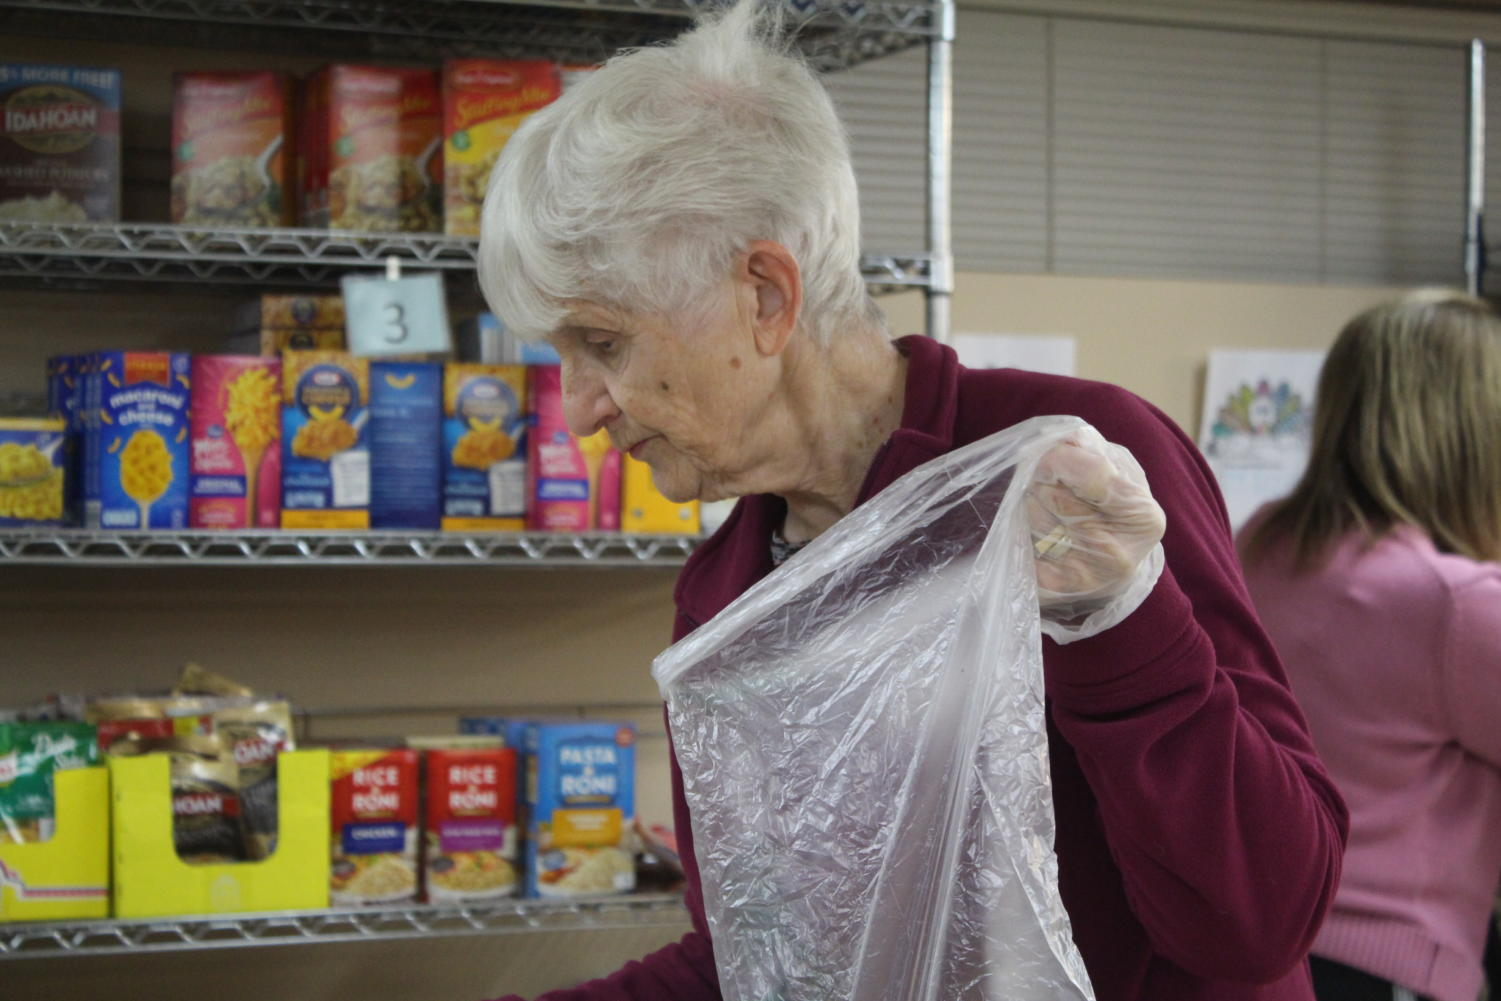 Marylin Chopp hands out bagels at the St. Cletus food pantry (Lonnroth/LION).